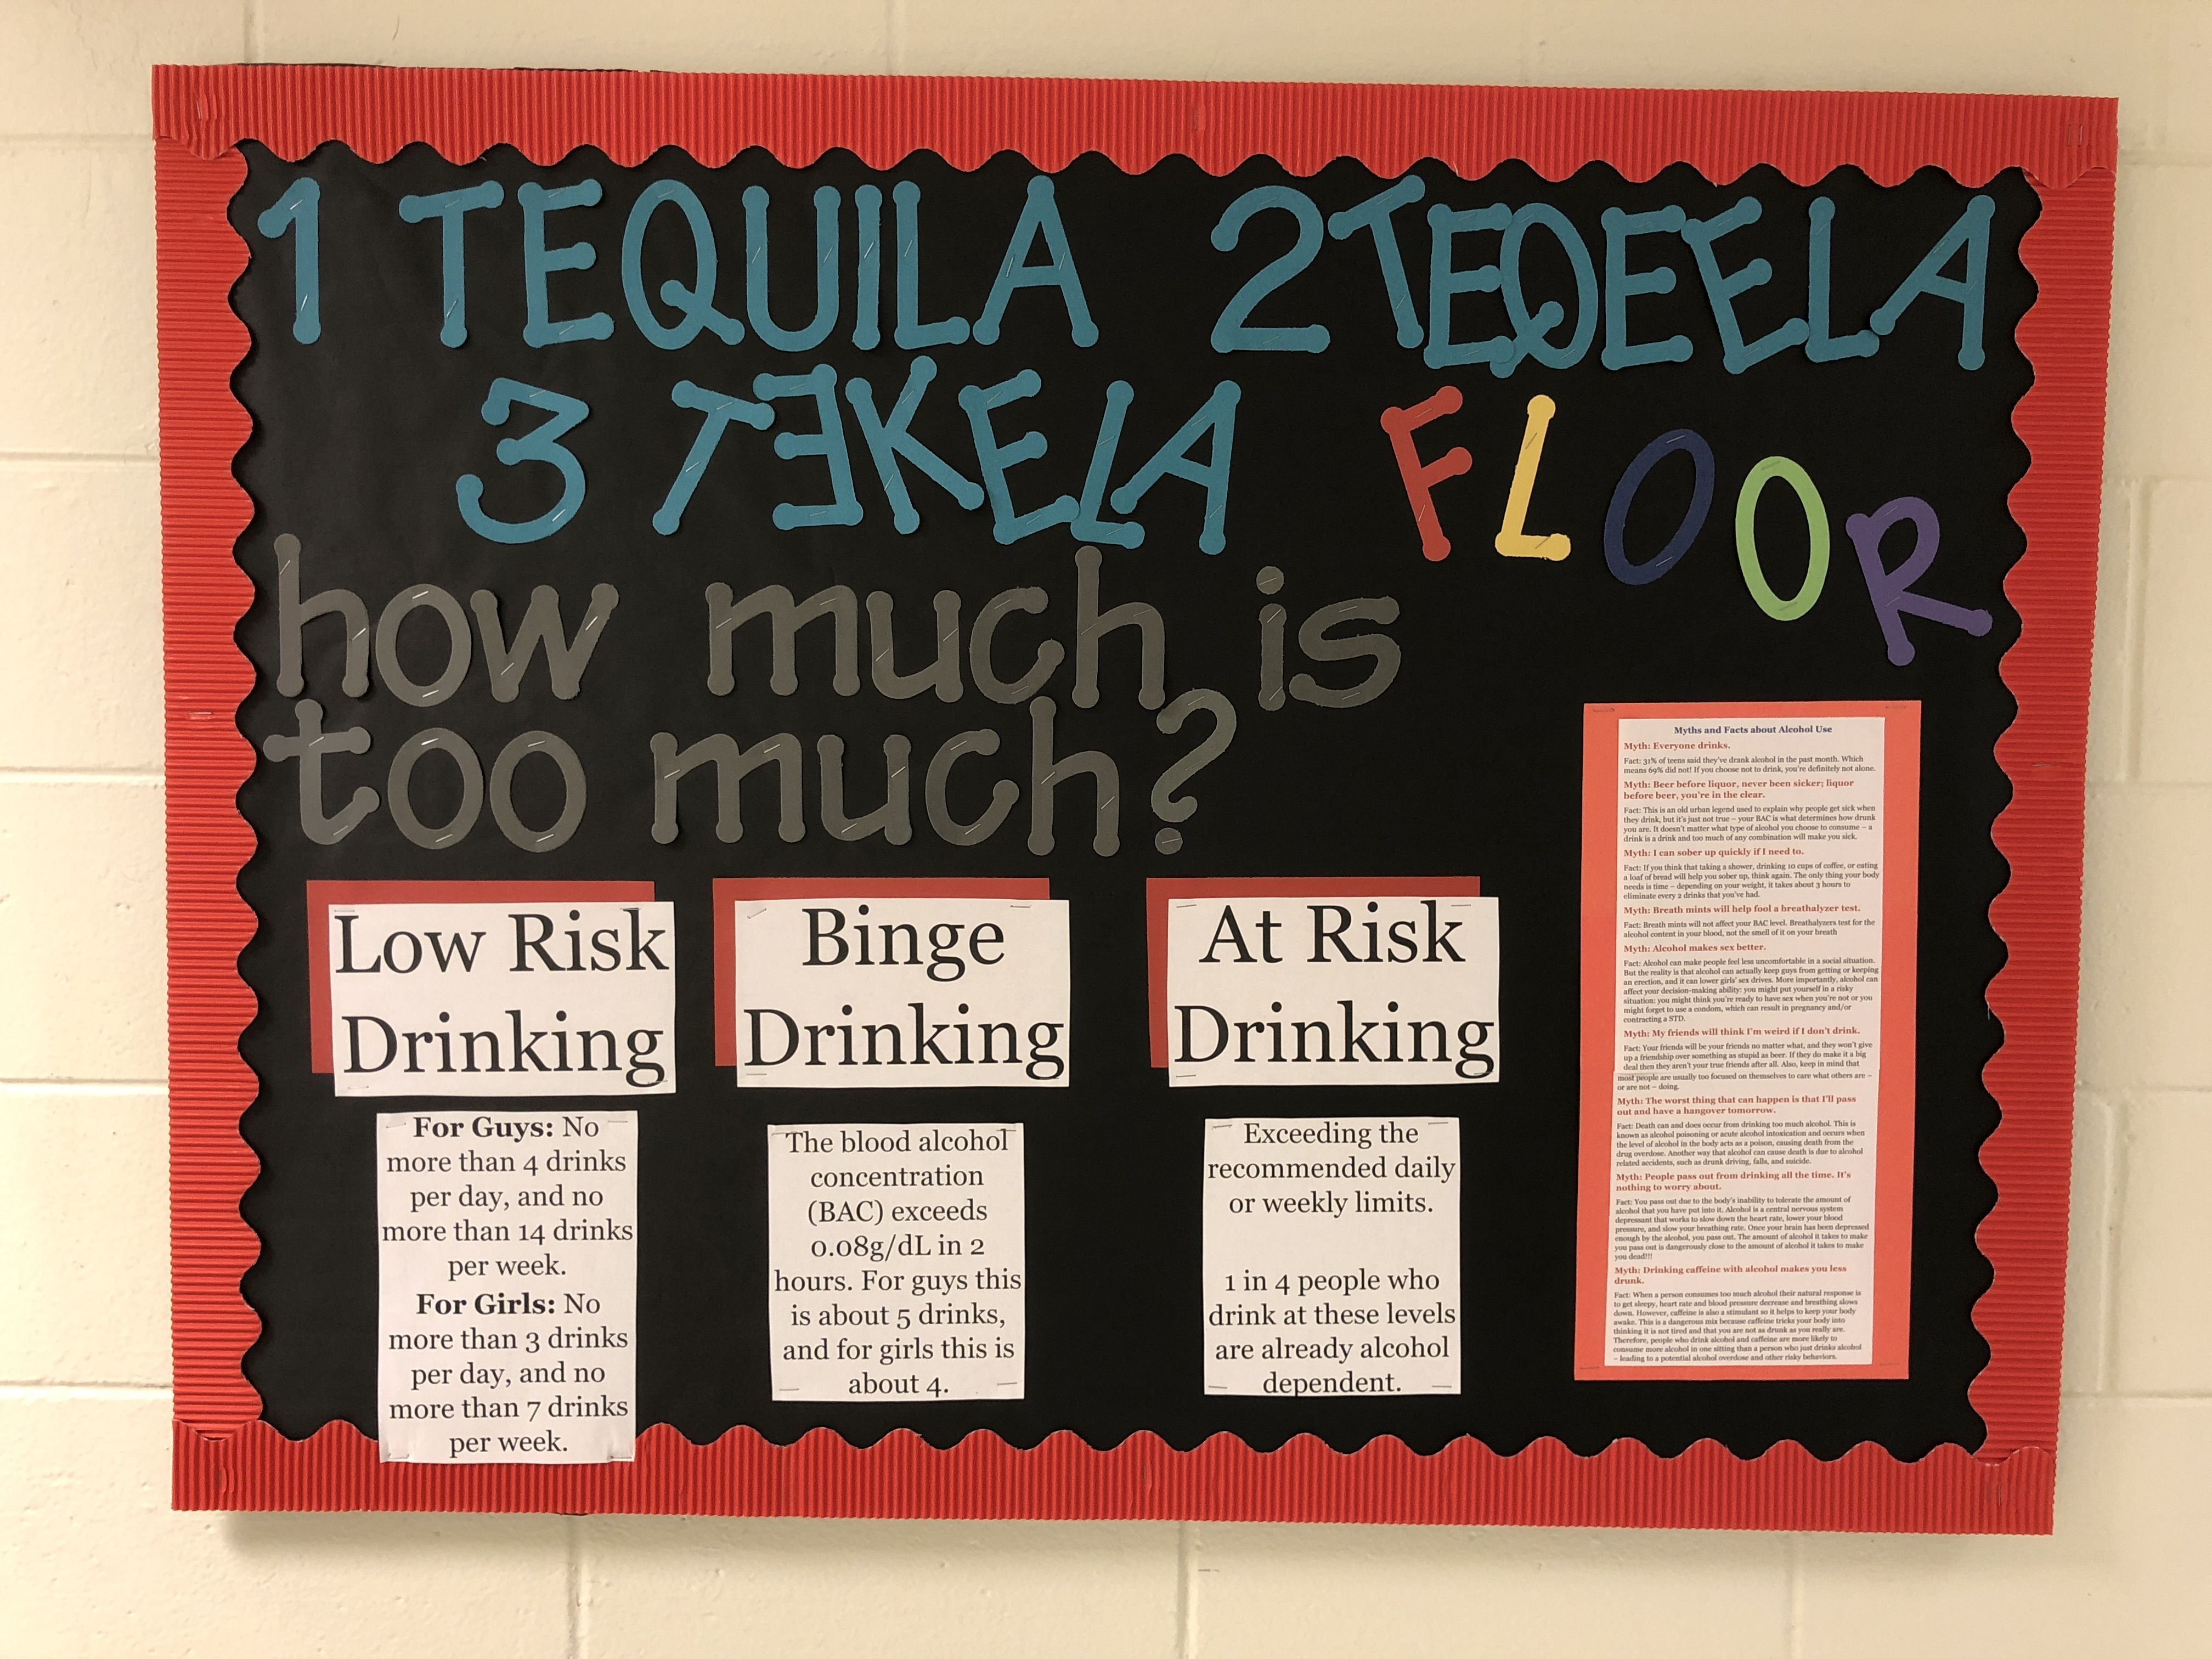 RA Bulletin Board. Safe Drinking Board. #rabulletinboards RA Bulletin Board. Safe Drinking Board. #rabulletinboards RA Bulletin Board. Safe Drinking Board. #rabulletinboards RA Bulletin Board. Safe Drinking Board. #rabulletinboards RA Bulletin Board. Safe Drinking Board. #rabulletinboards RA Bulletin Board. Safe Drinking Board. #rabulletinboards RA Bulletin Board. Safe Drinking Board. #rabulletinboards RA Bulletin Board. Safe Drinking Board. #rabulletinboards